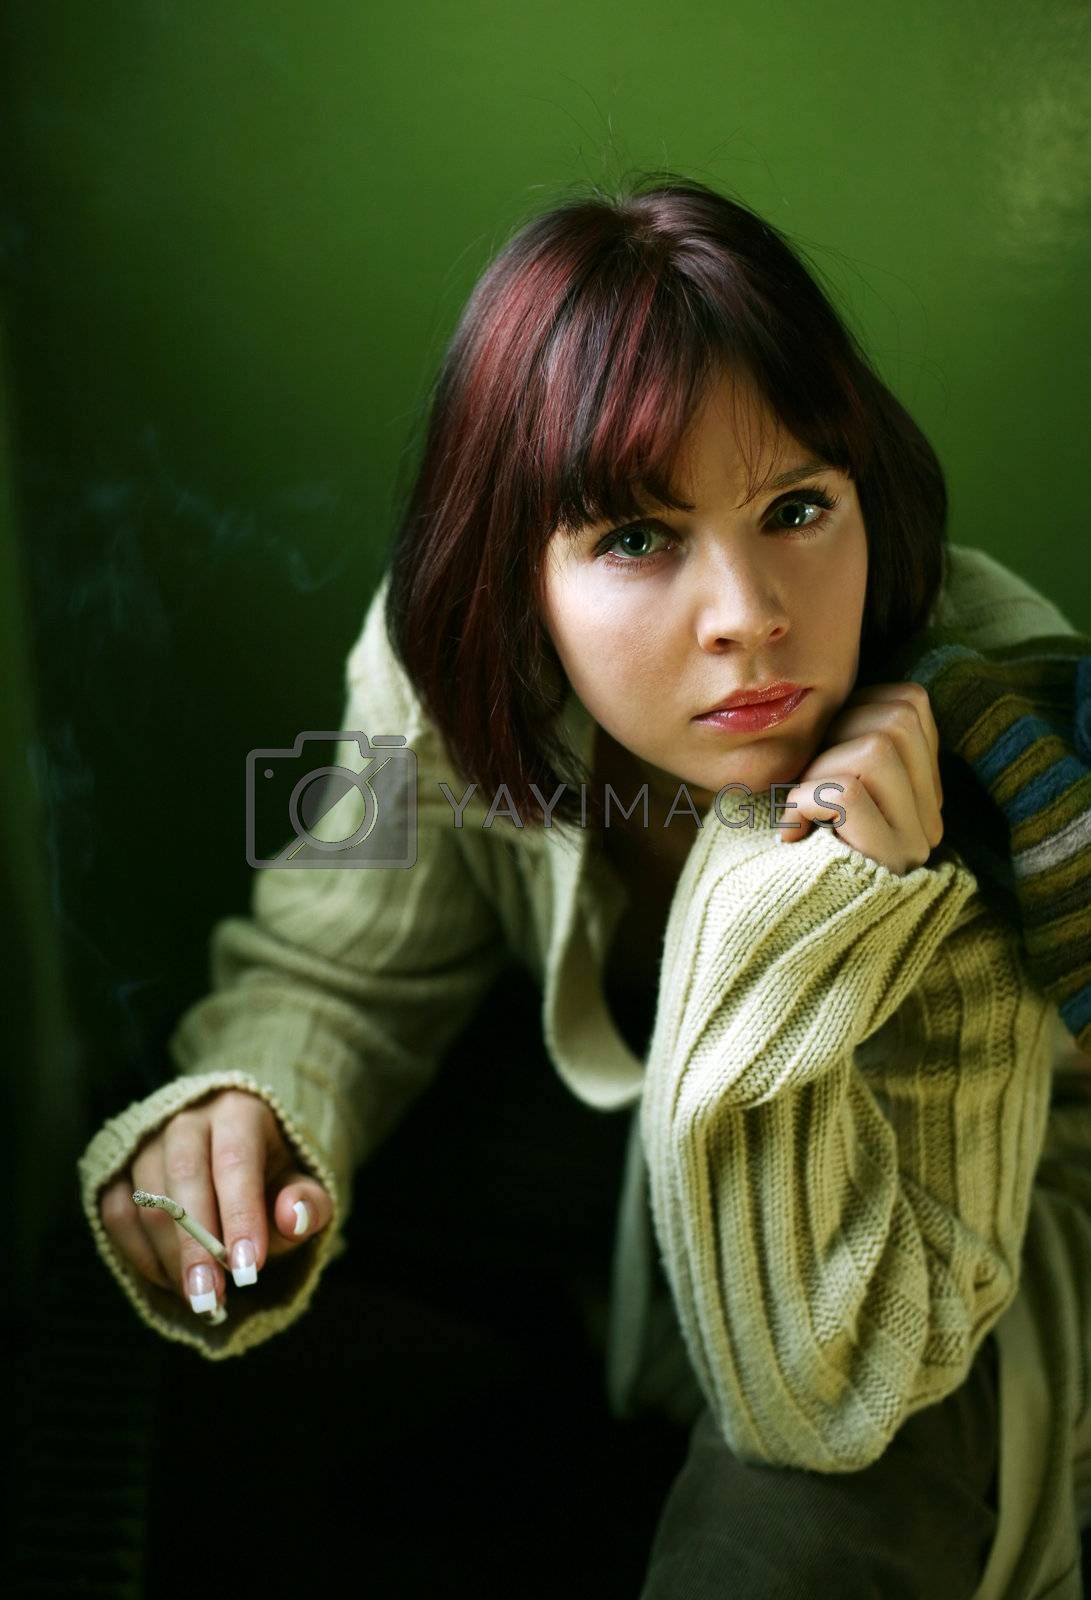 The beautiful brunette gets a light a cigarette